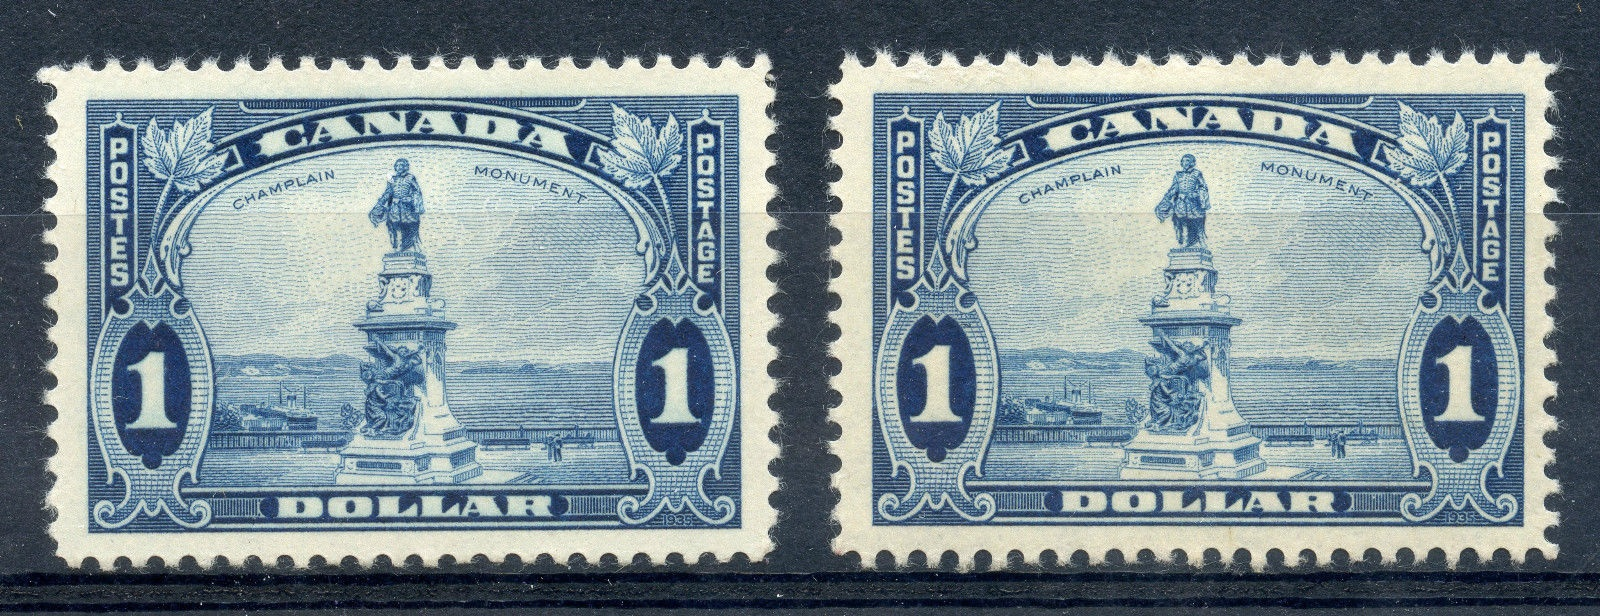 Weeda canada 227 227i vf mint h dg 1 champlain in 2 for Acheter une maison au canada conditions